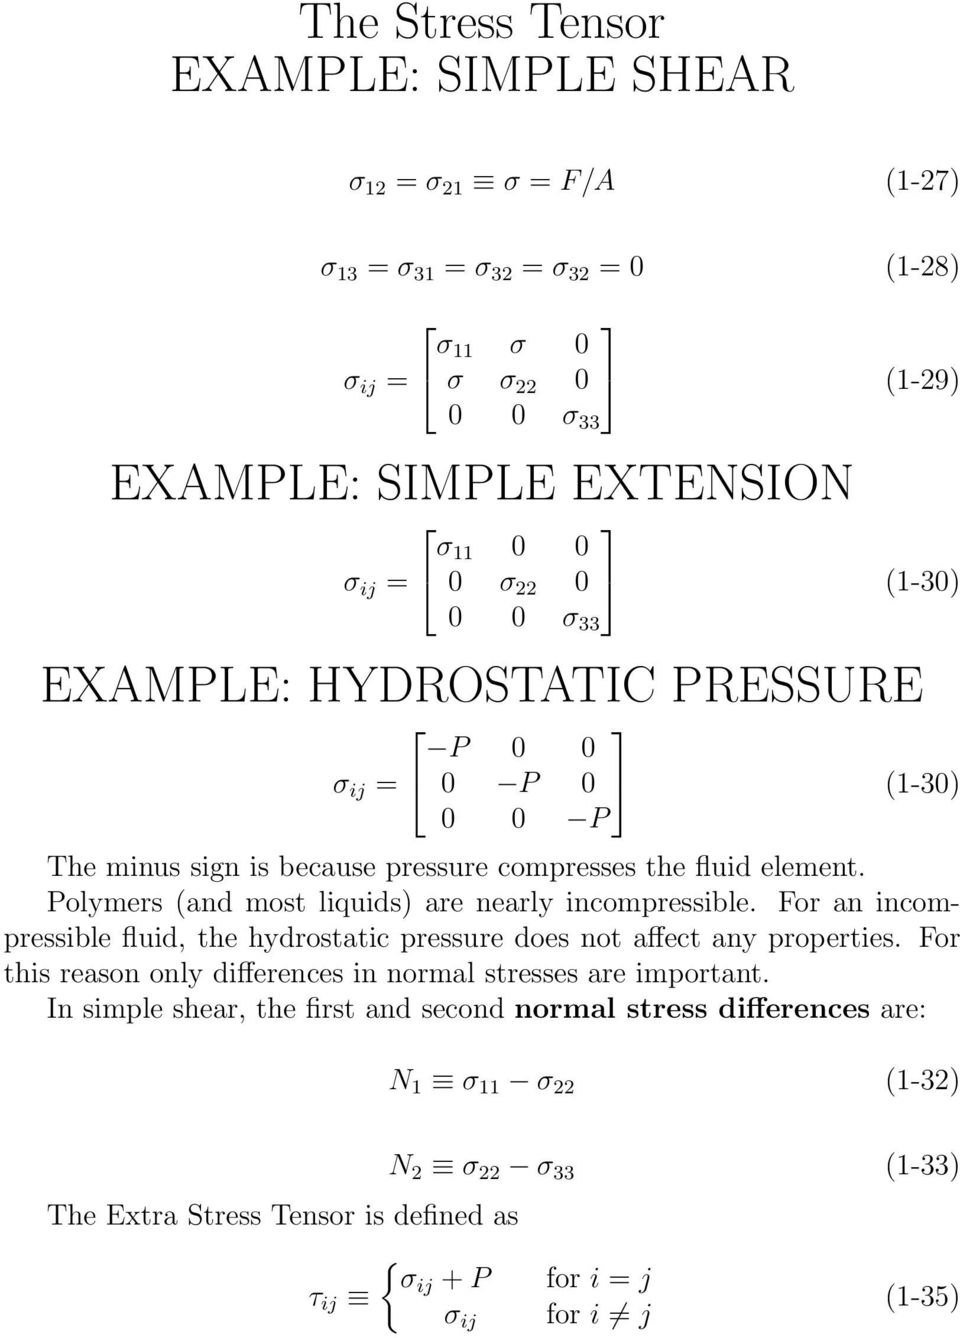 Polymers (and most liquids) are nearly incompressible. For an incompressible fluid, the hydrostatic pressure does not affect any properties.